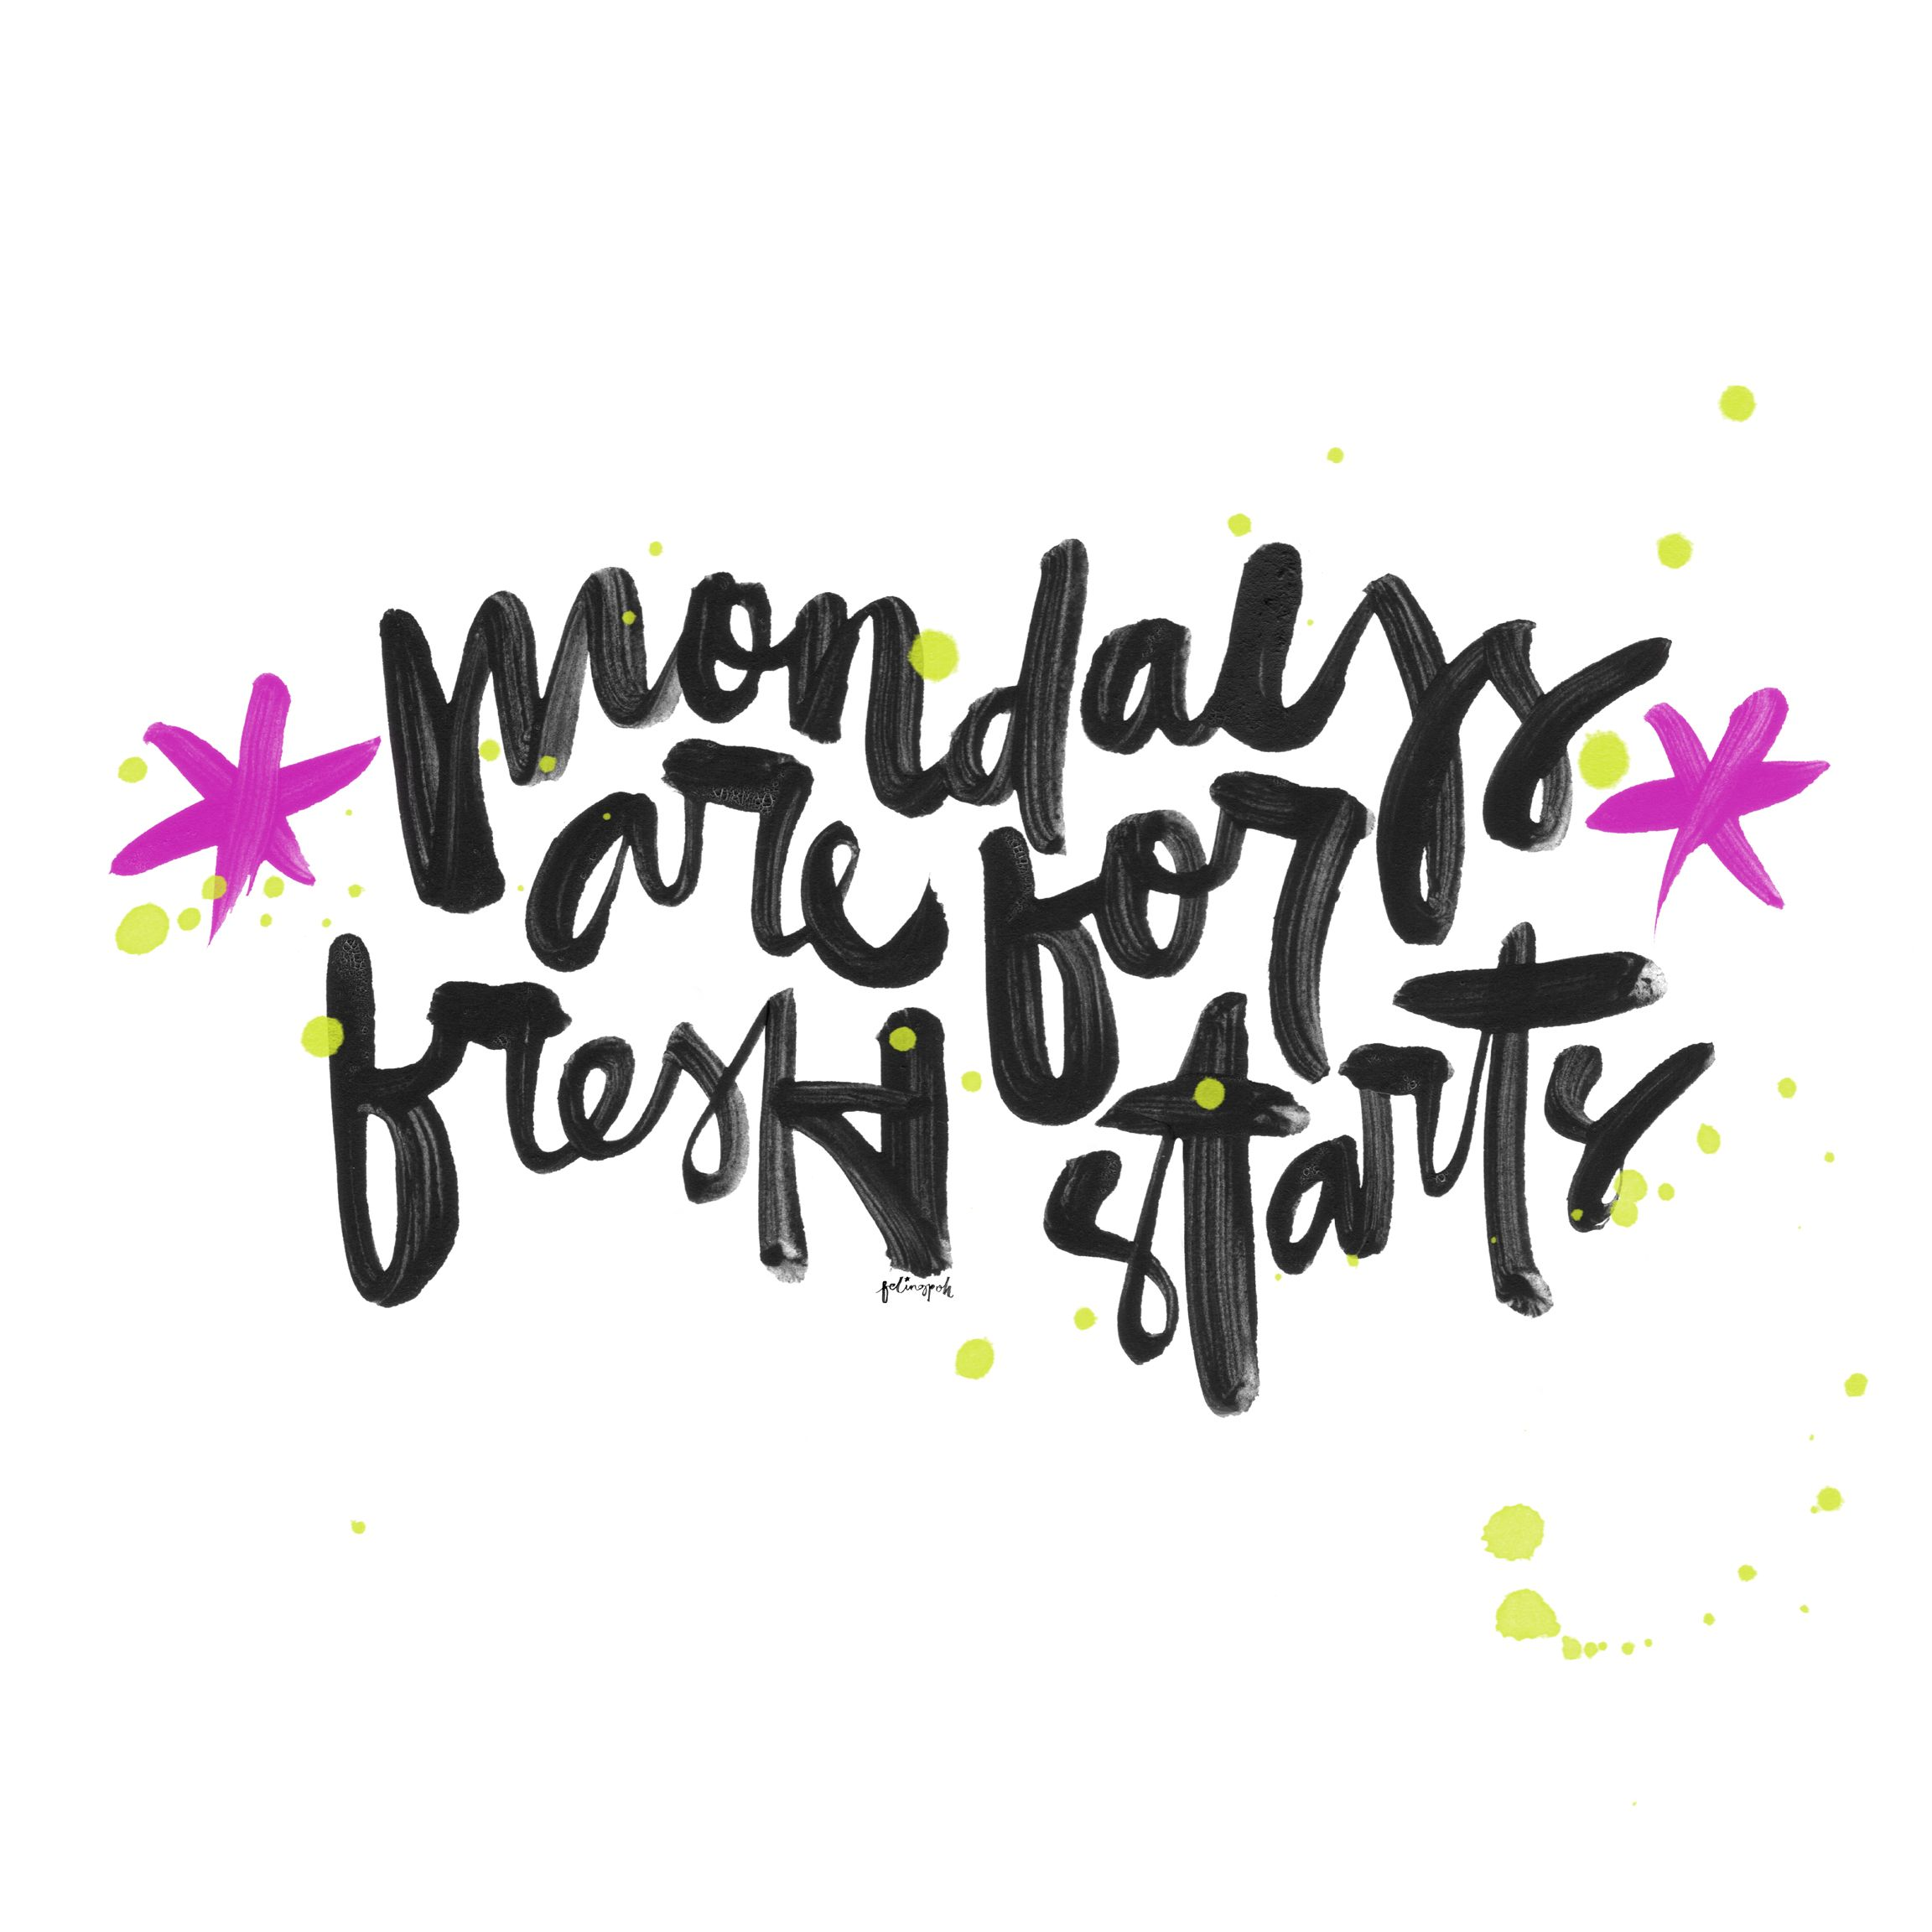 Calligraphy Lettering Amp Quotes Instagram Felingpoh